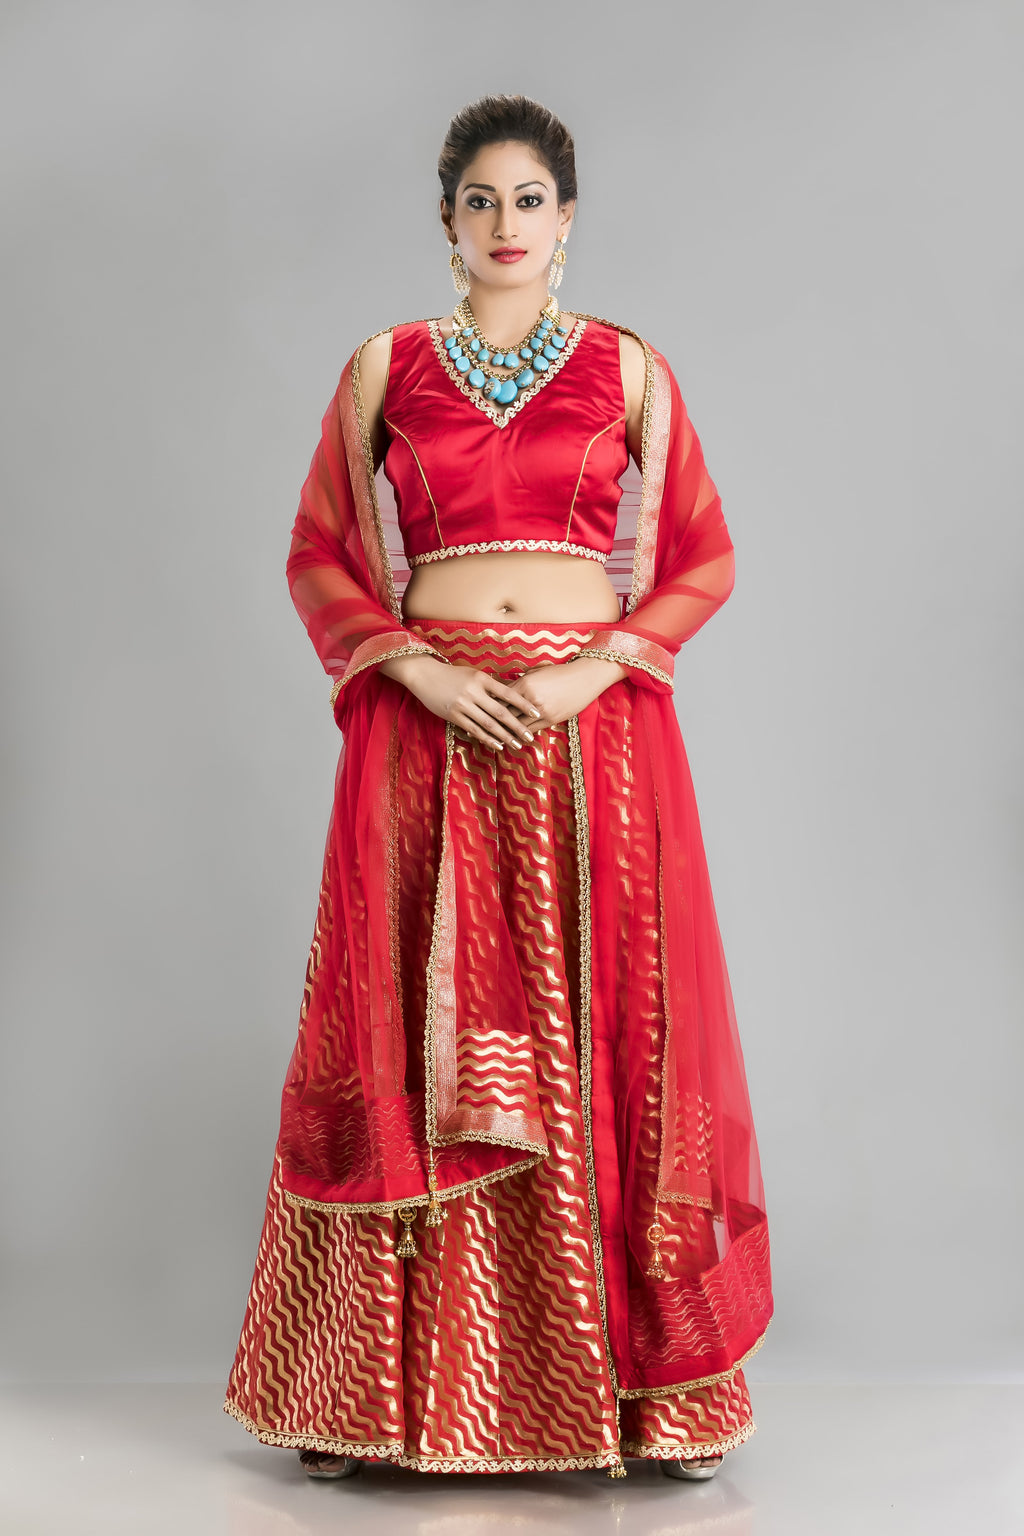 Ravishing in Red-the Bold Gold and red Lehenga